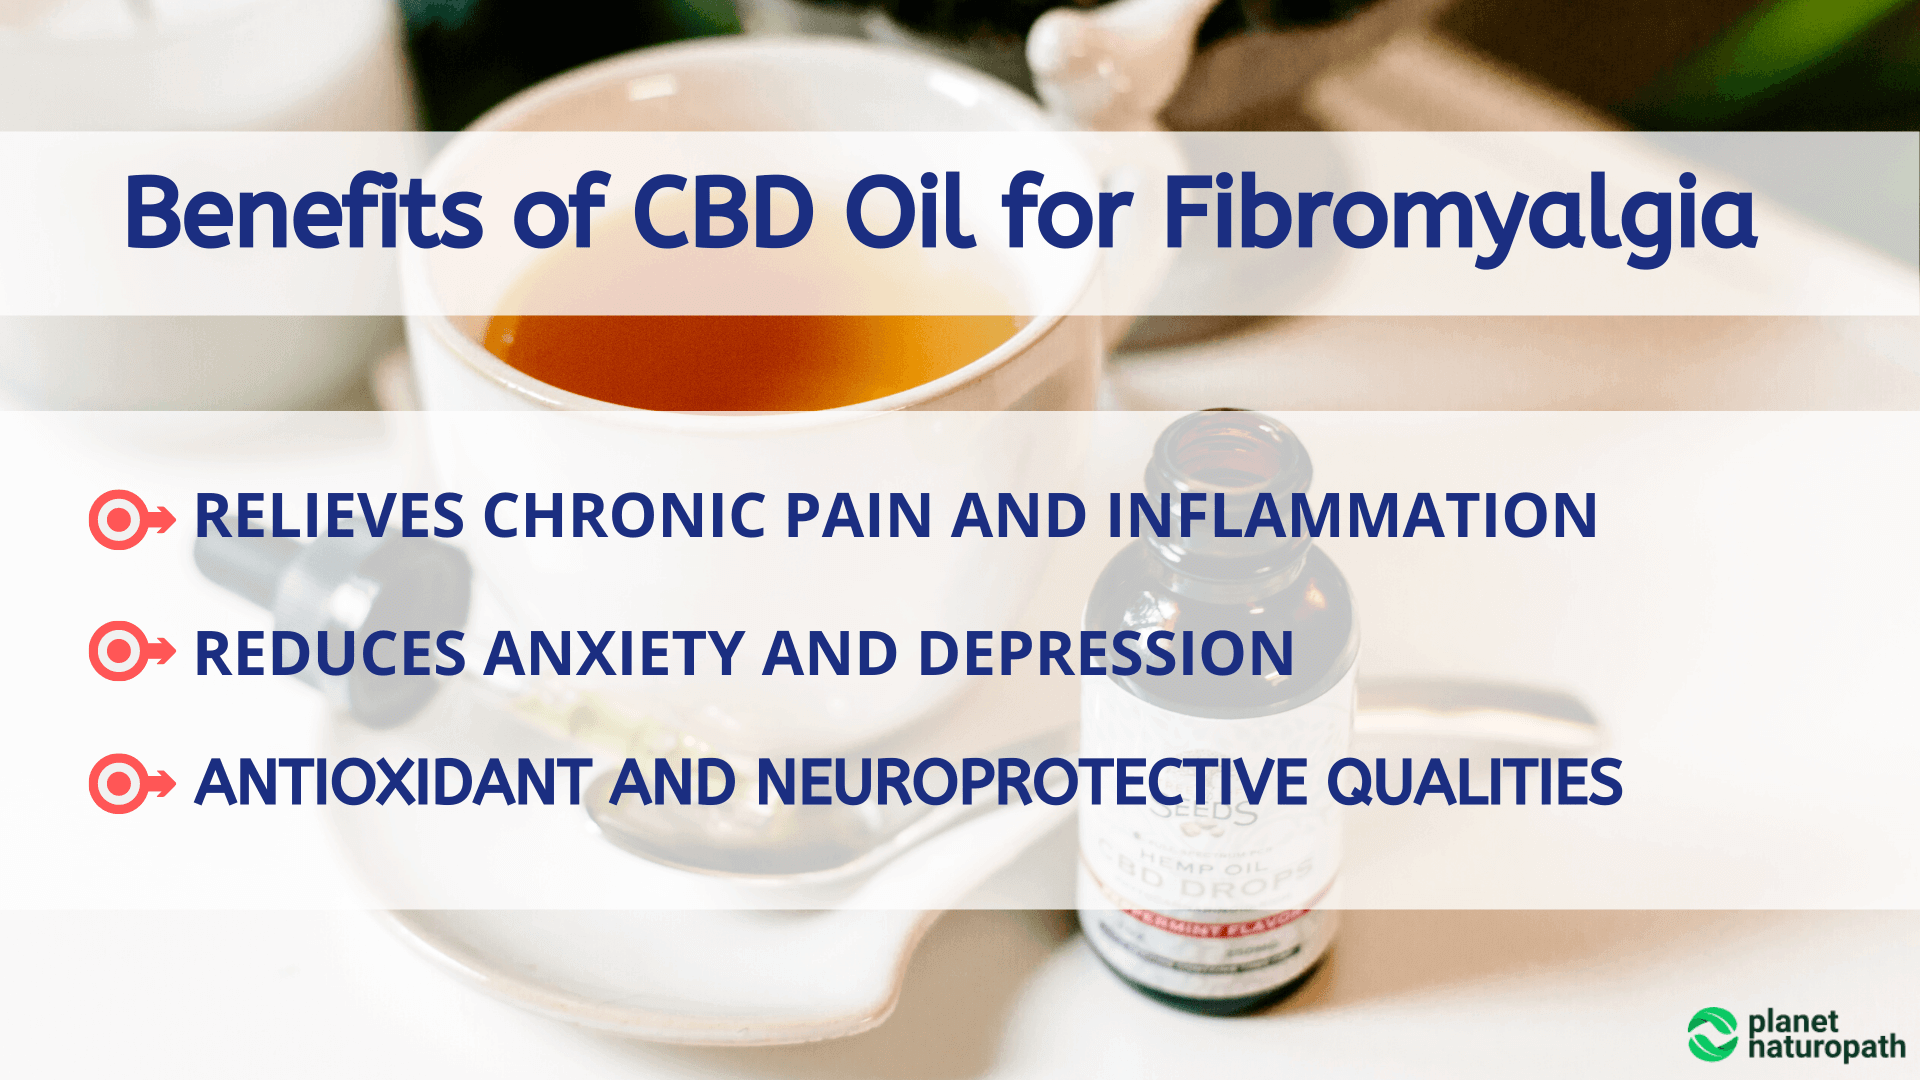 Benefits-of-CBD-Oil-for-Fibromyalgia